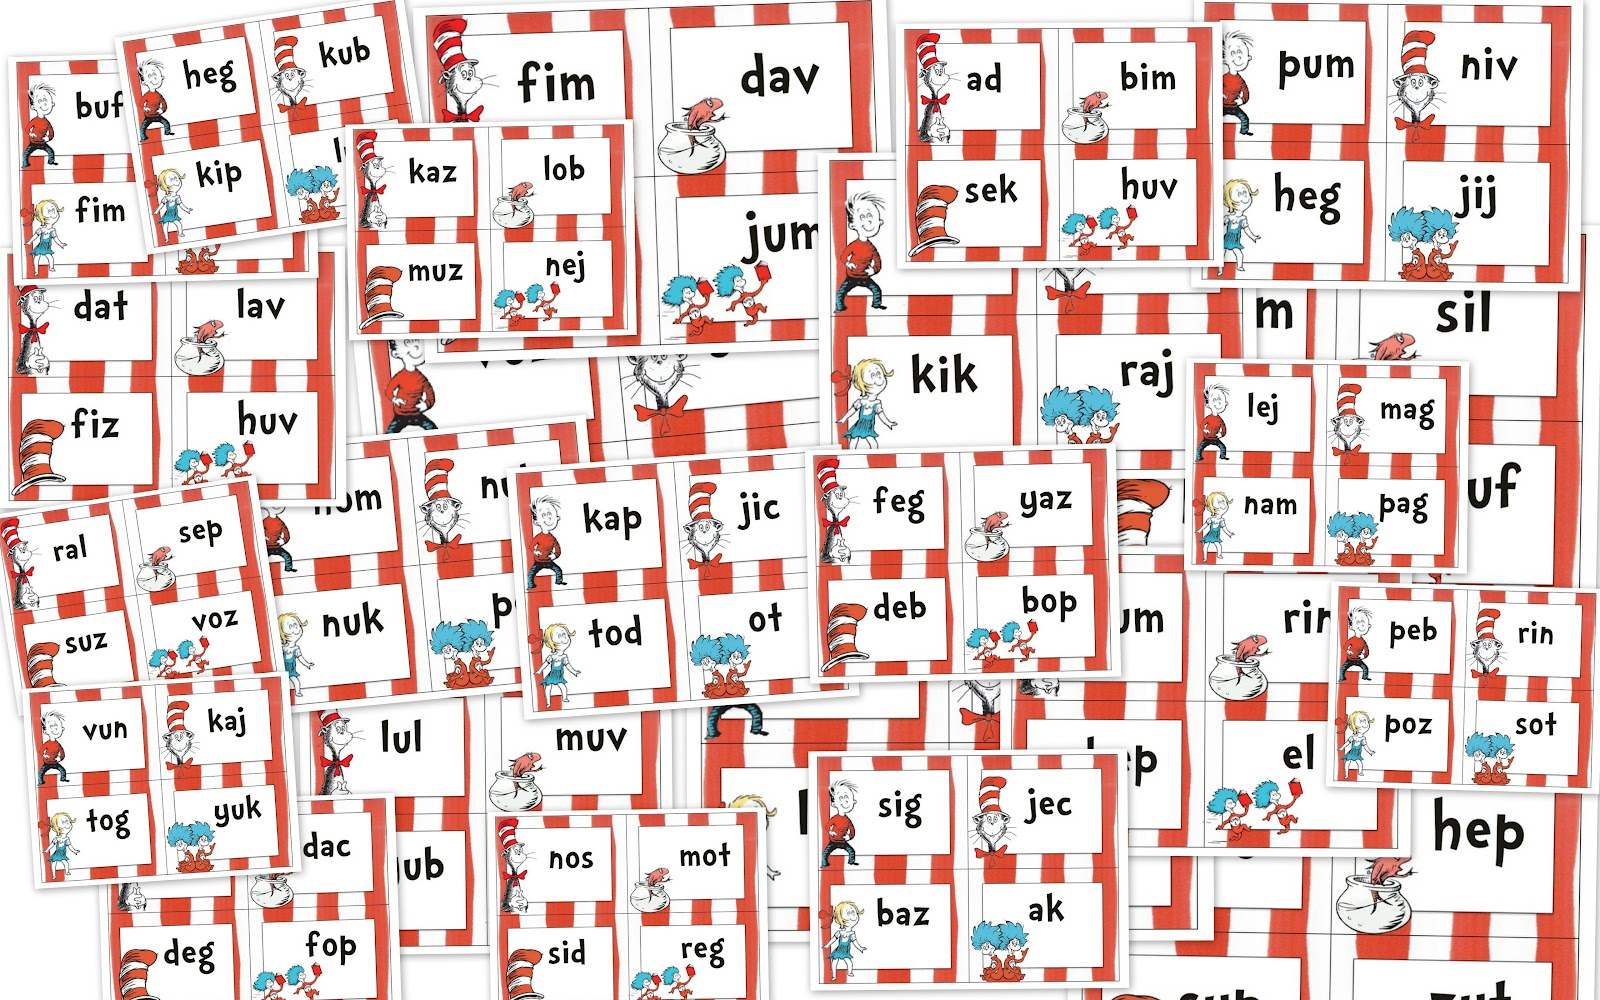 Cat In The Hat Vocabulary Words